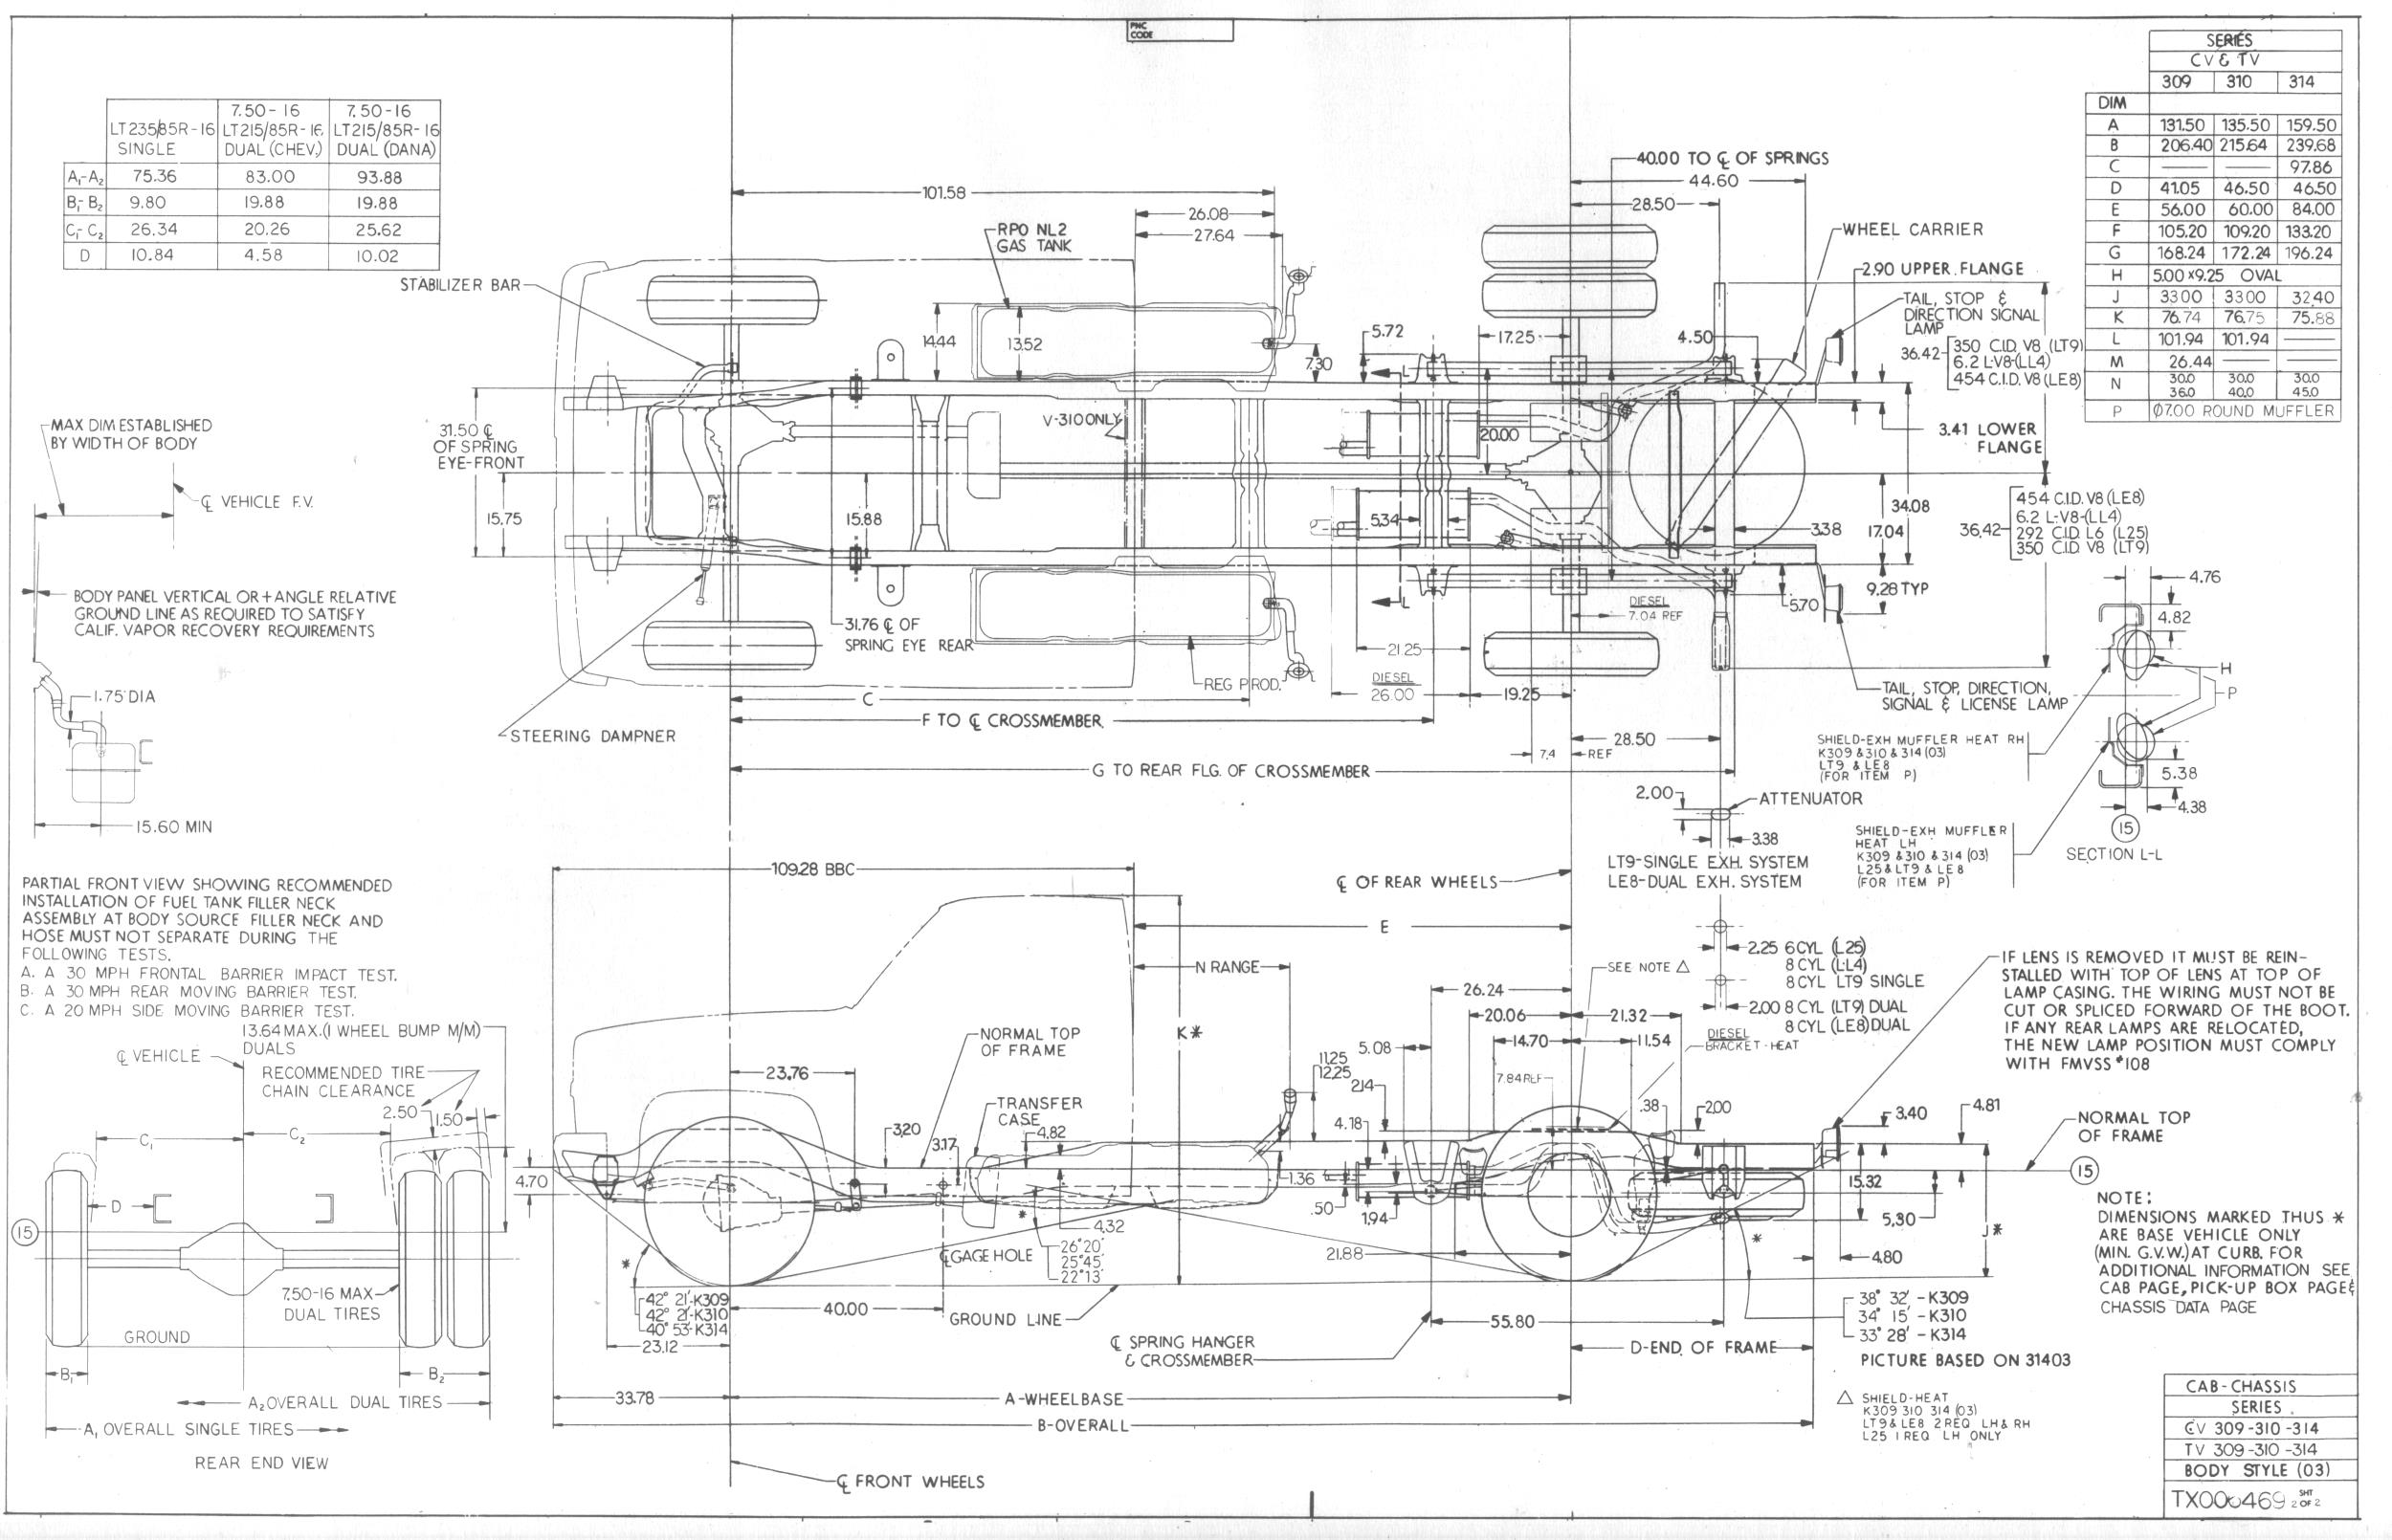 Wiring Diagram For 1989 Chevy S10 – The Wiring Diagram ...